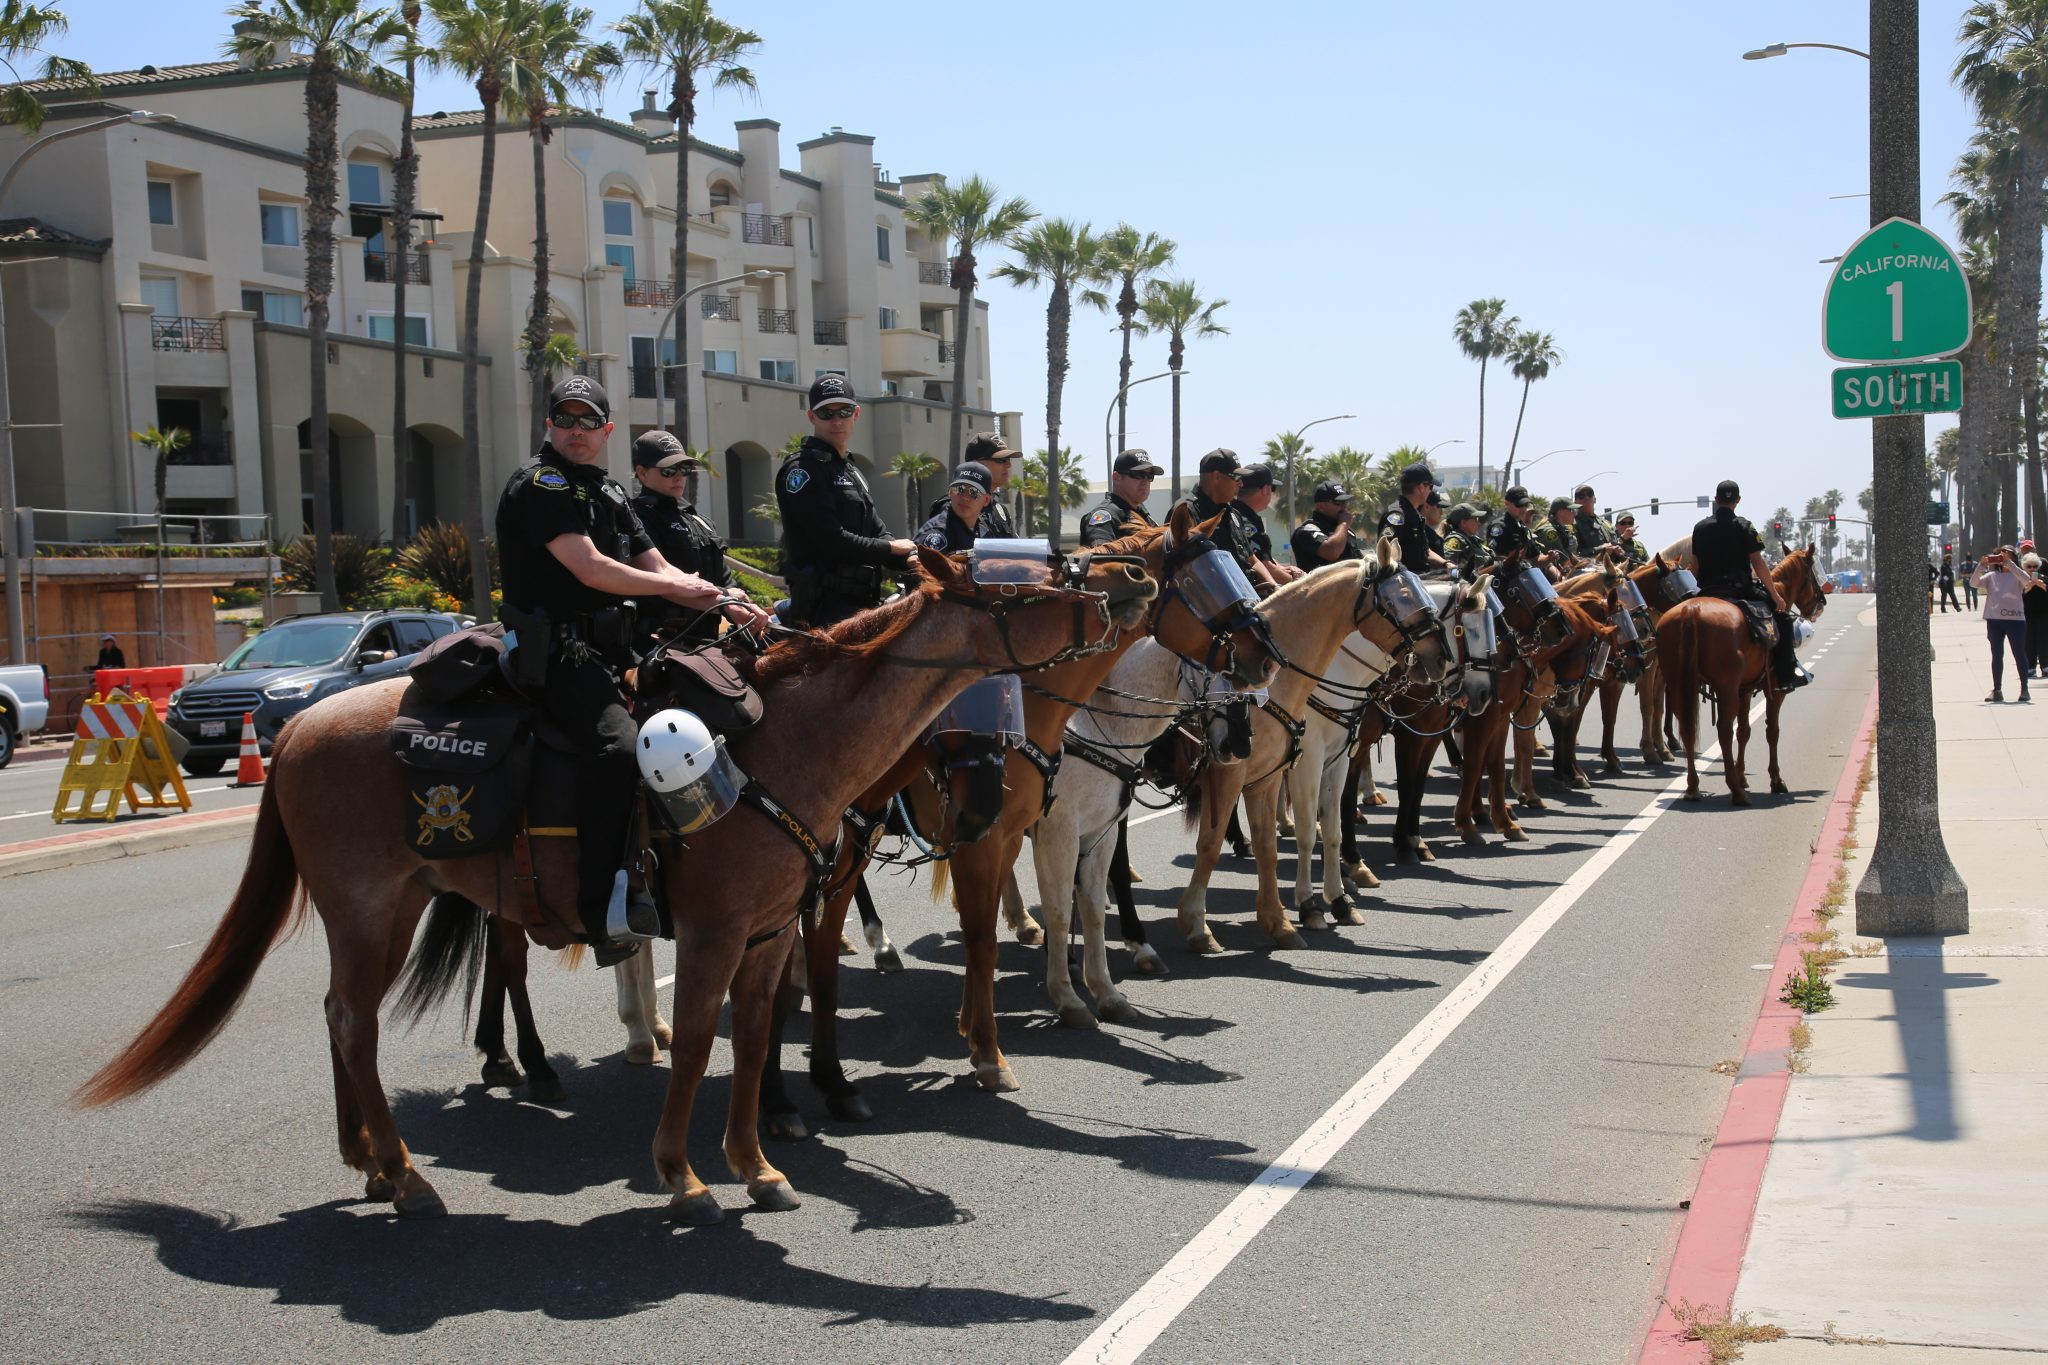 Police at shutdown protest in Huntington Beach, California, May 1, 2020 (mikeledray/Shutterstock.com)